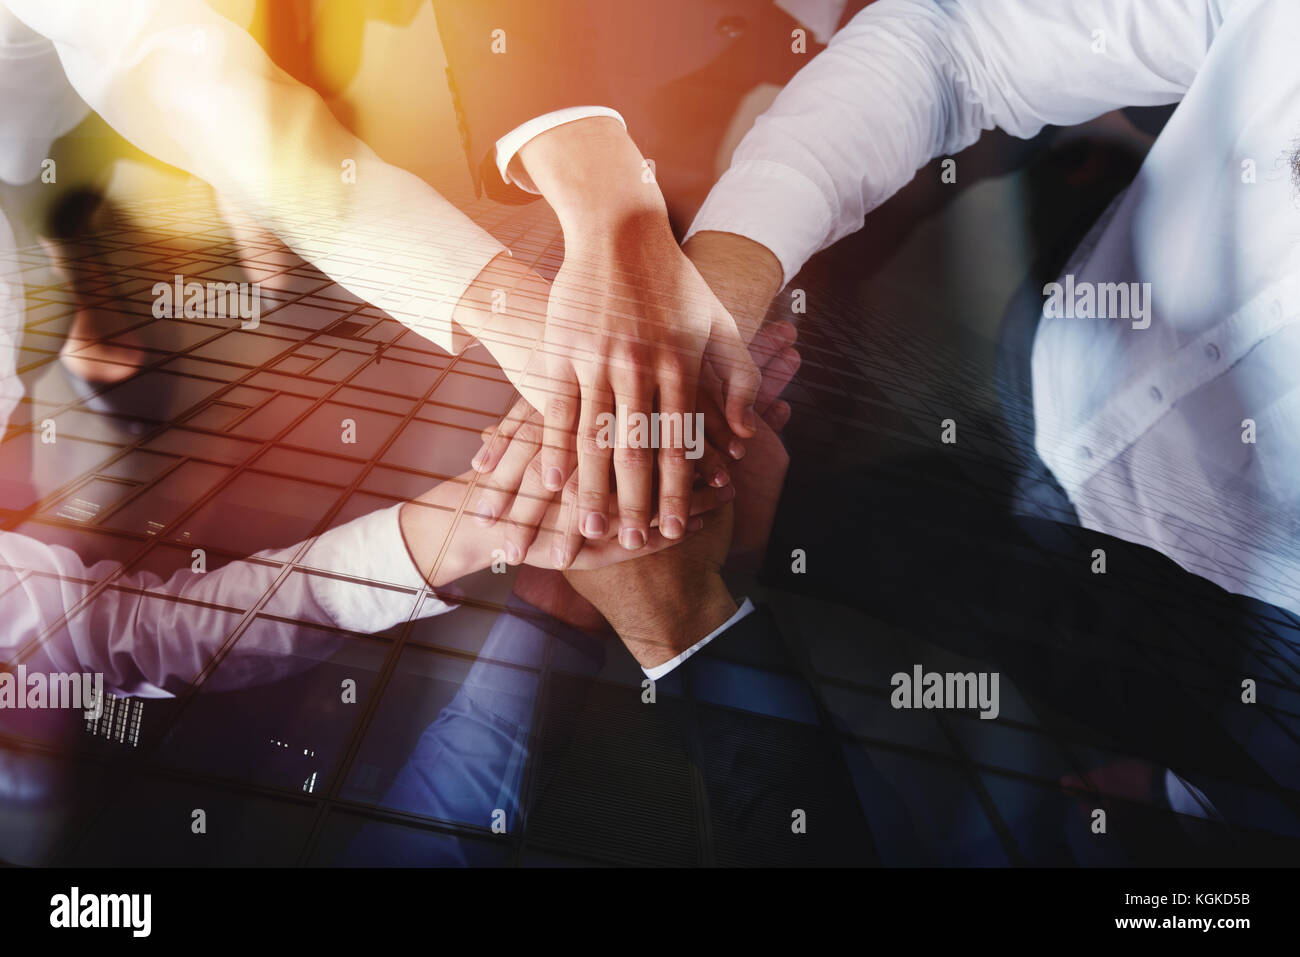 Business people joining hands in the office. concept of teamwork and partnership. double exposure - Stock Image